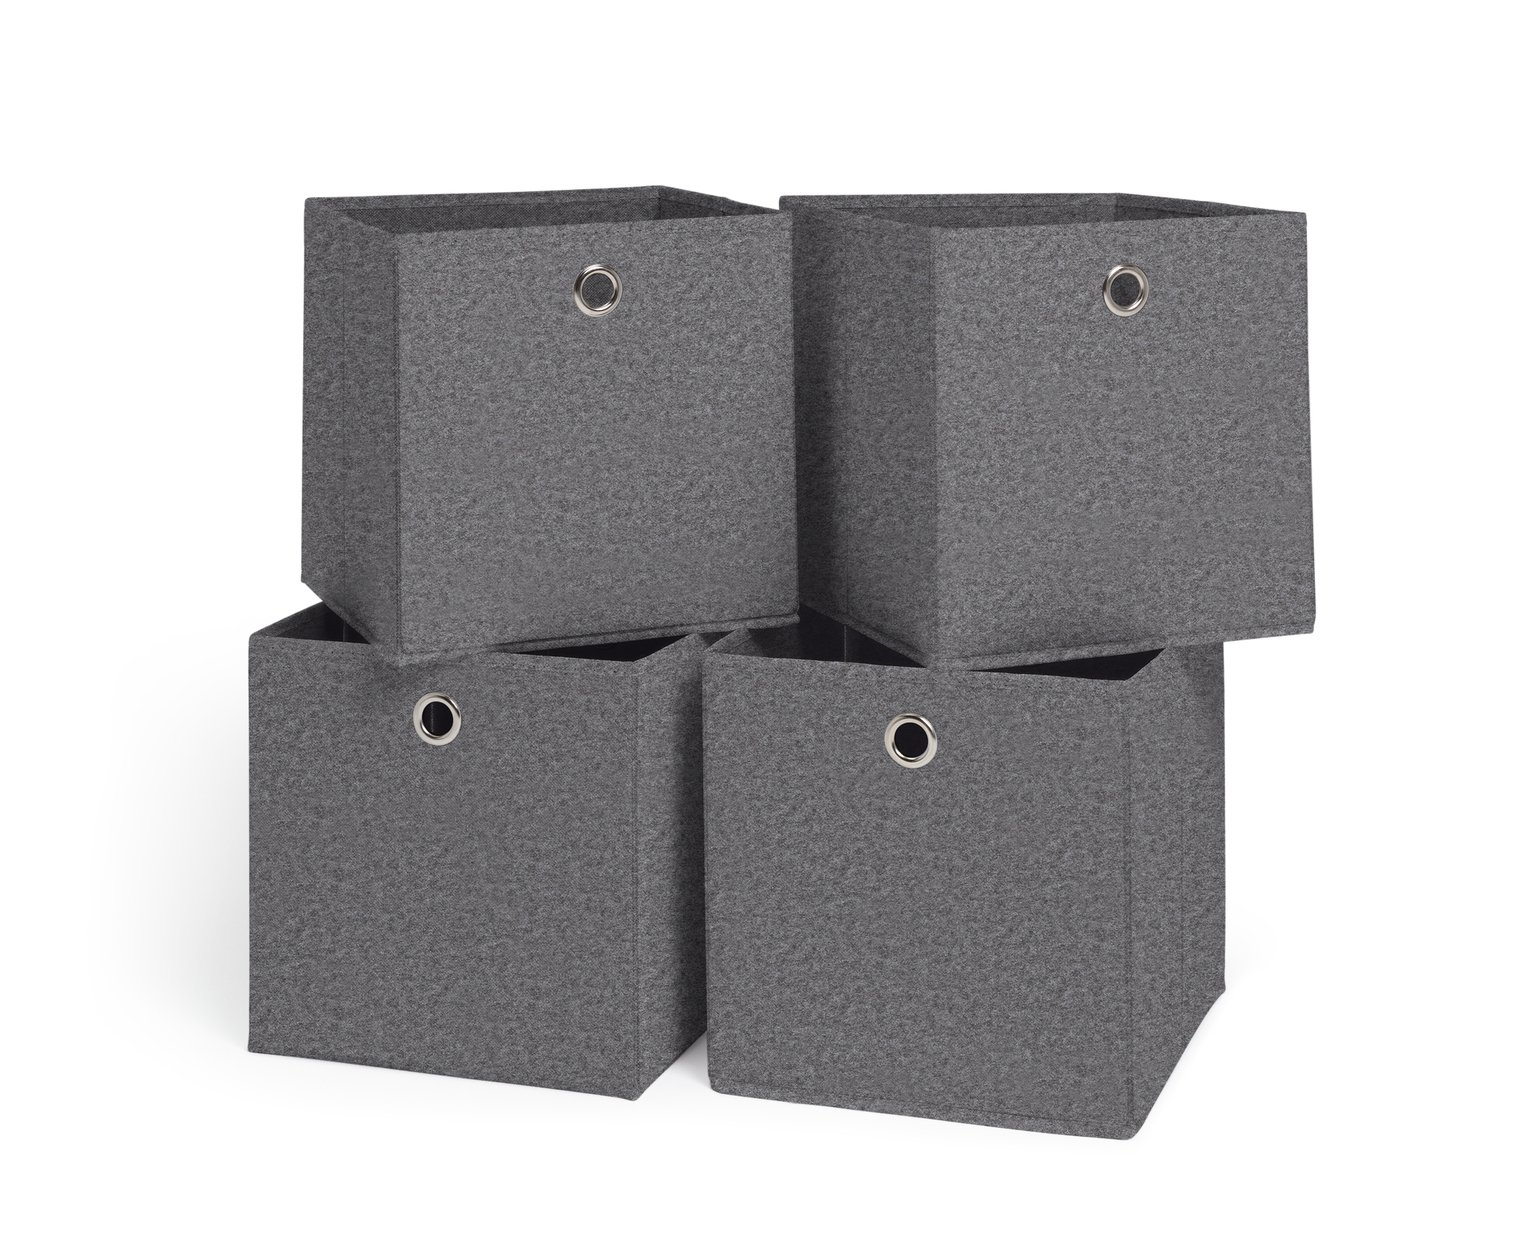 Argos Home Squares Set Of 4 Storage Boxes   Grey Felt